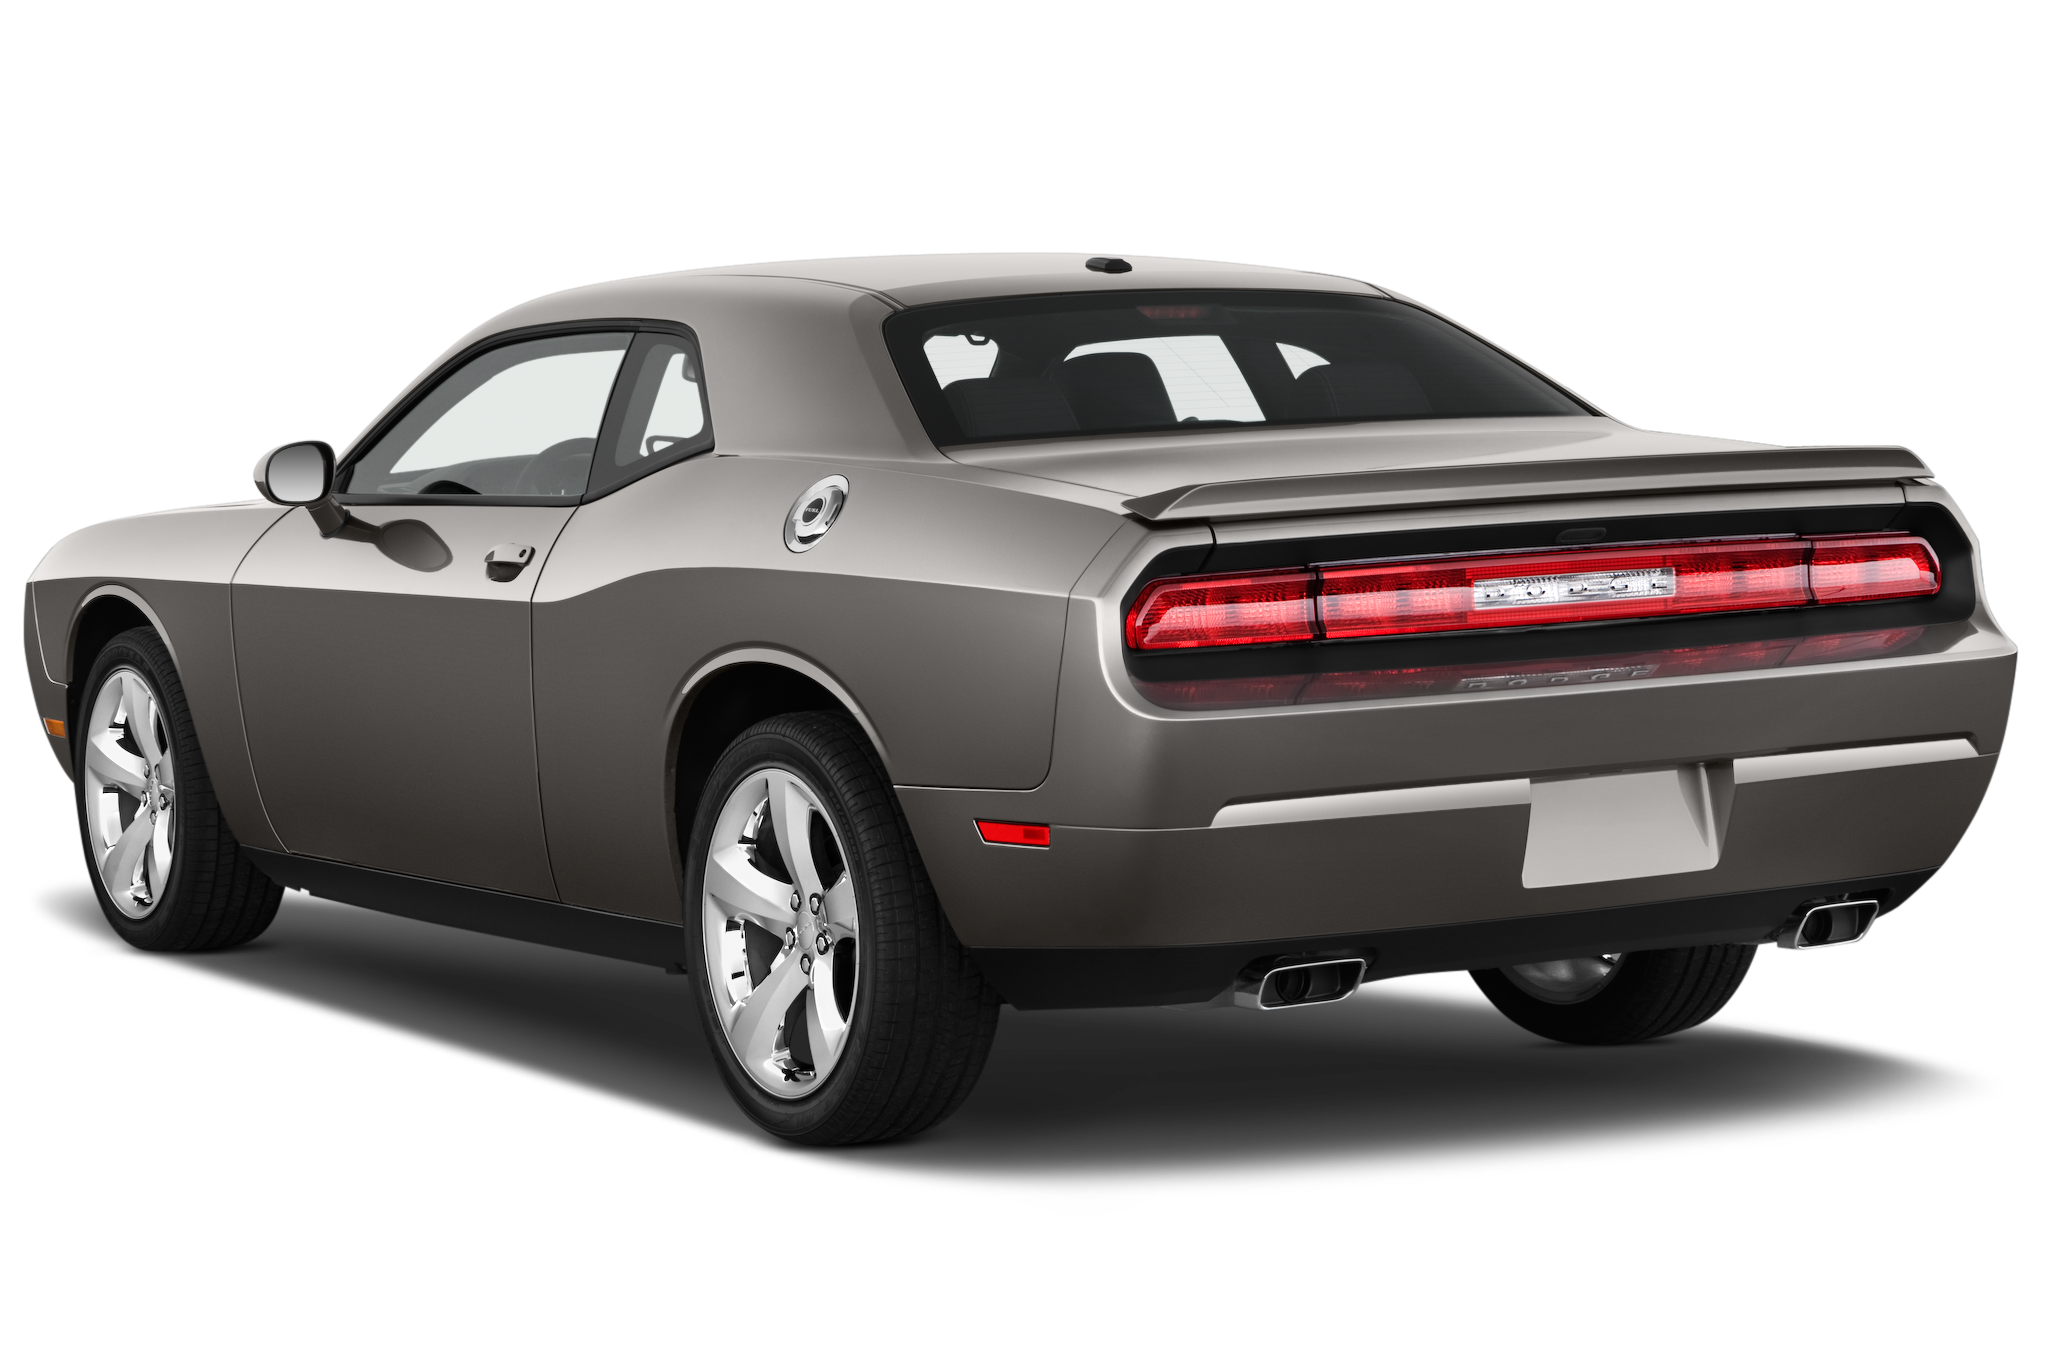 SEMA 2013: 2014 Dodge Challenger Shaker, Mopar Editions Unveiled.